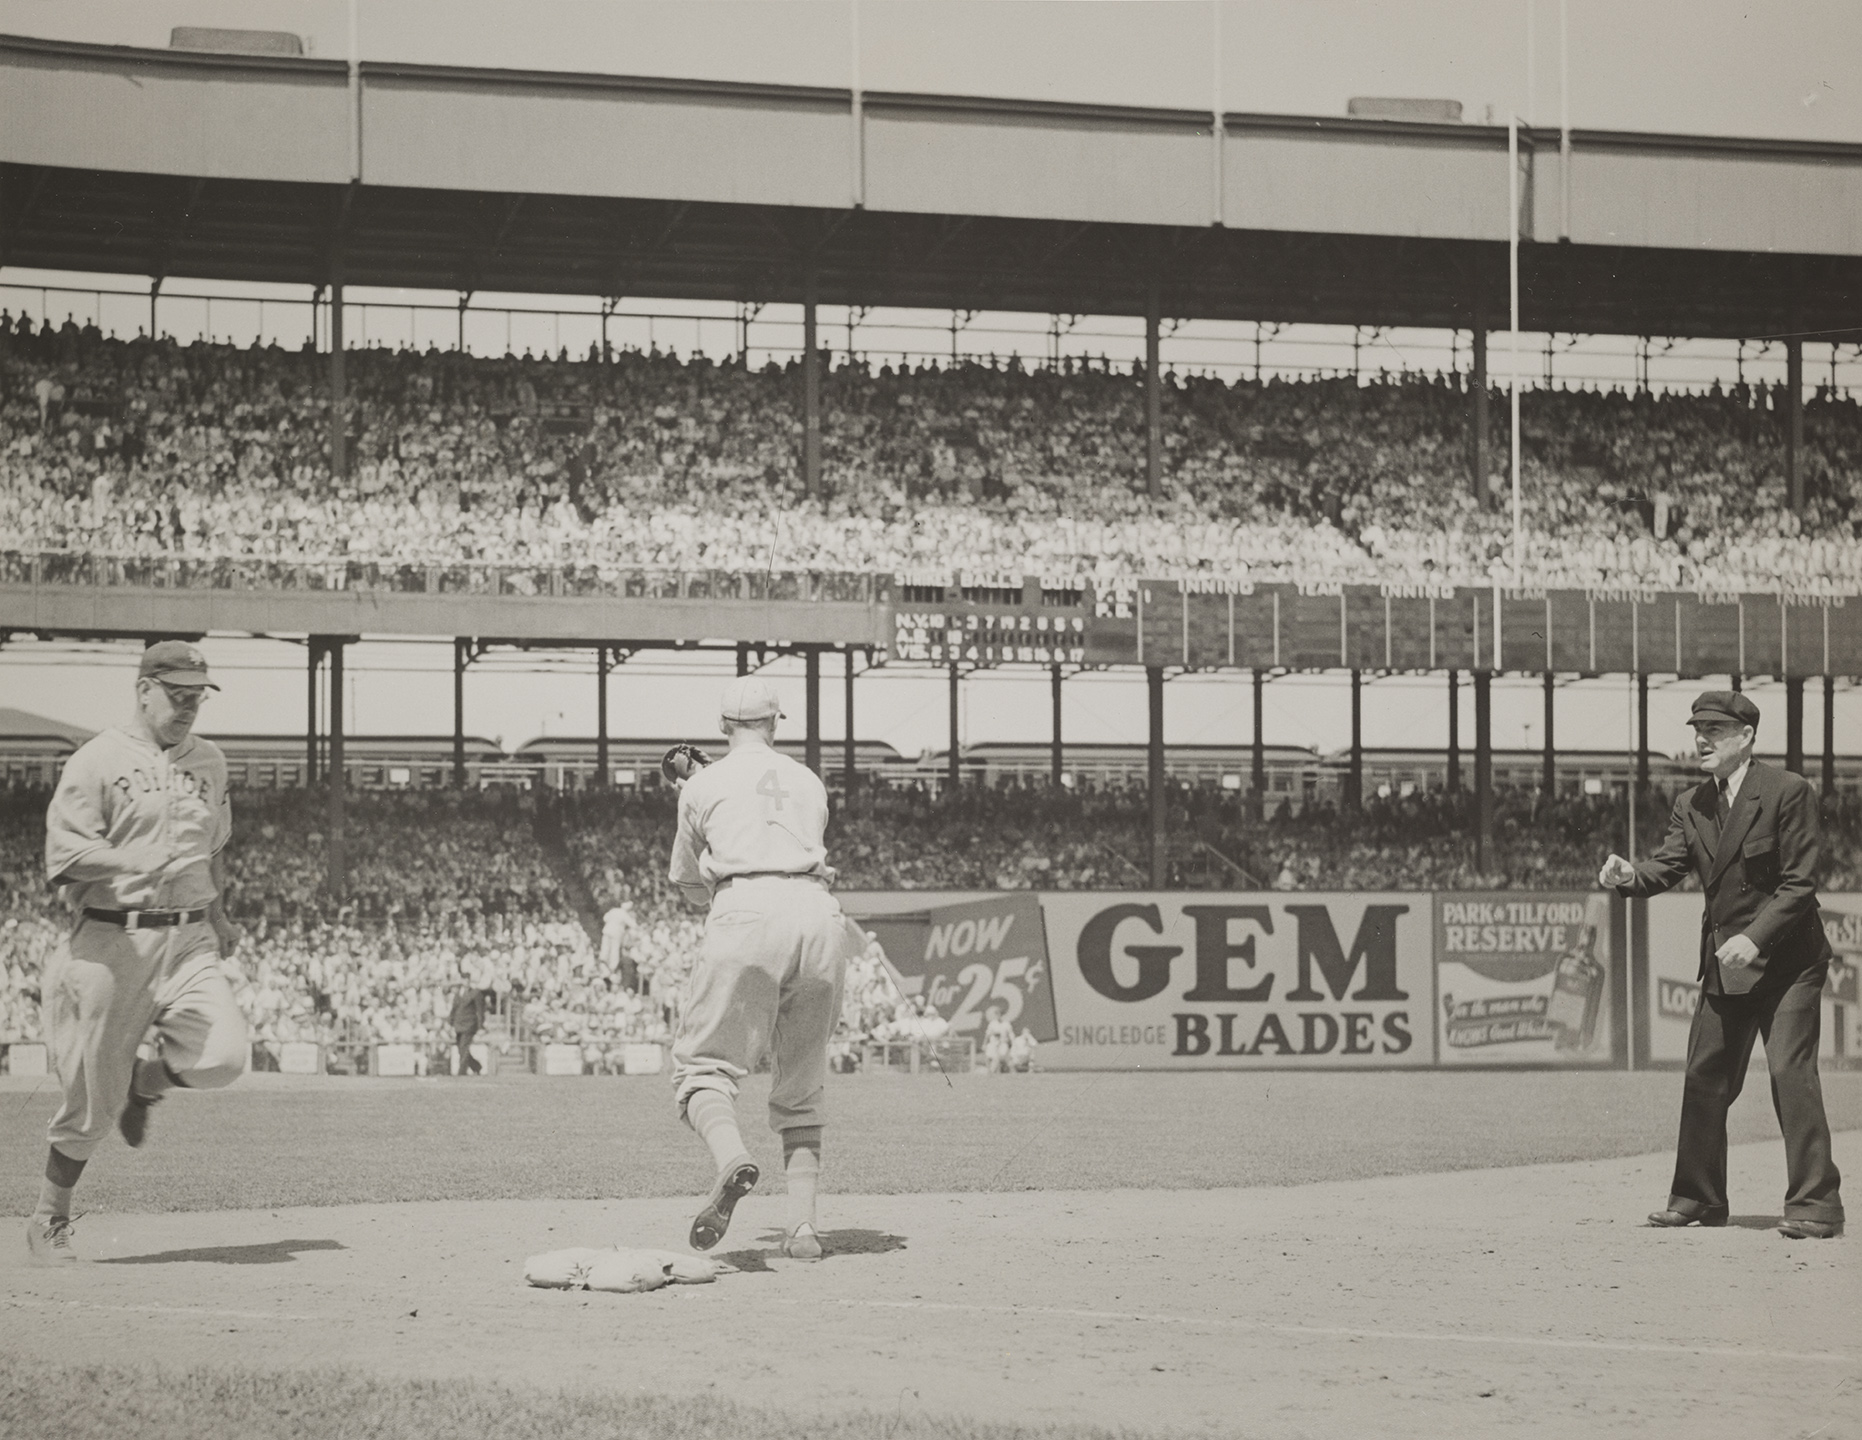 Police vs. Fire Department baseball game, Polo Grounds, 1940s. NYC Municipal Archives Collections.